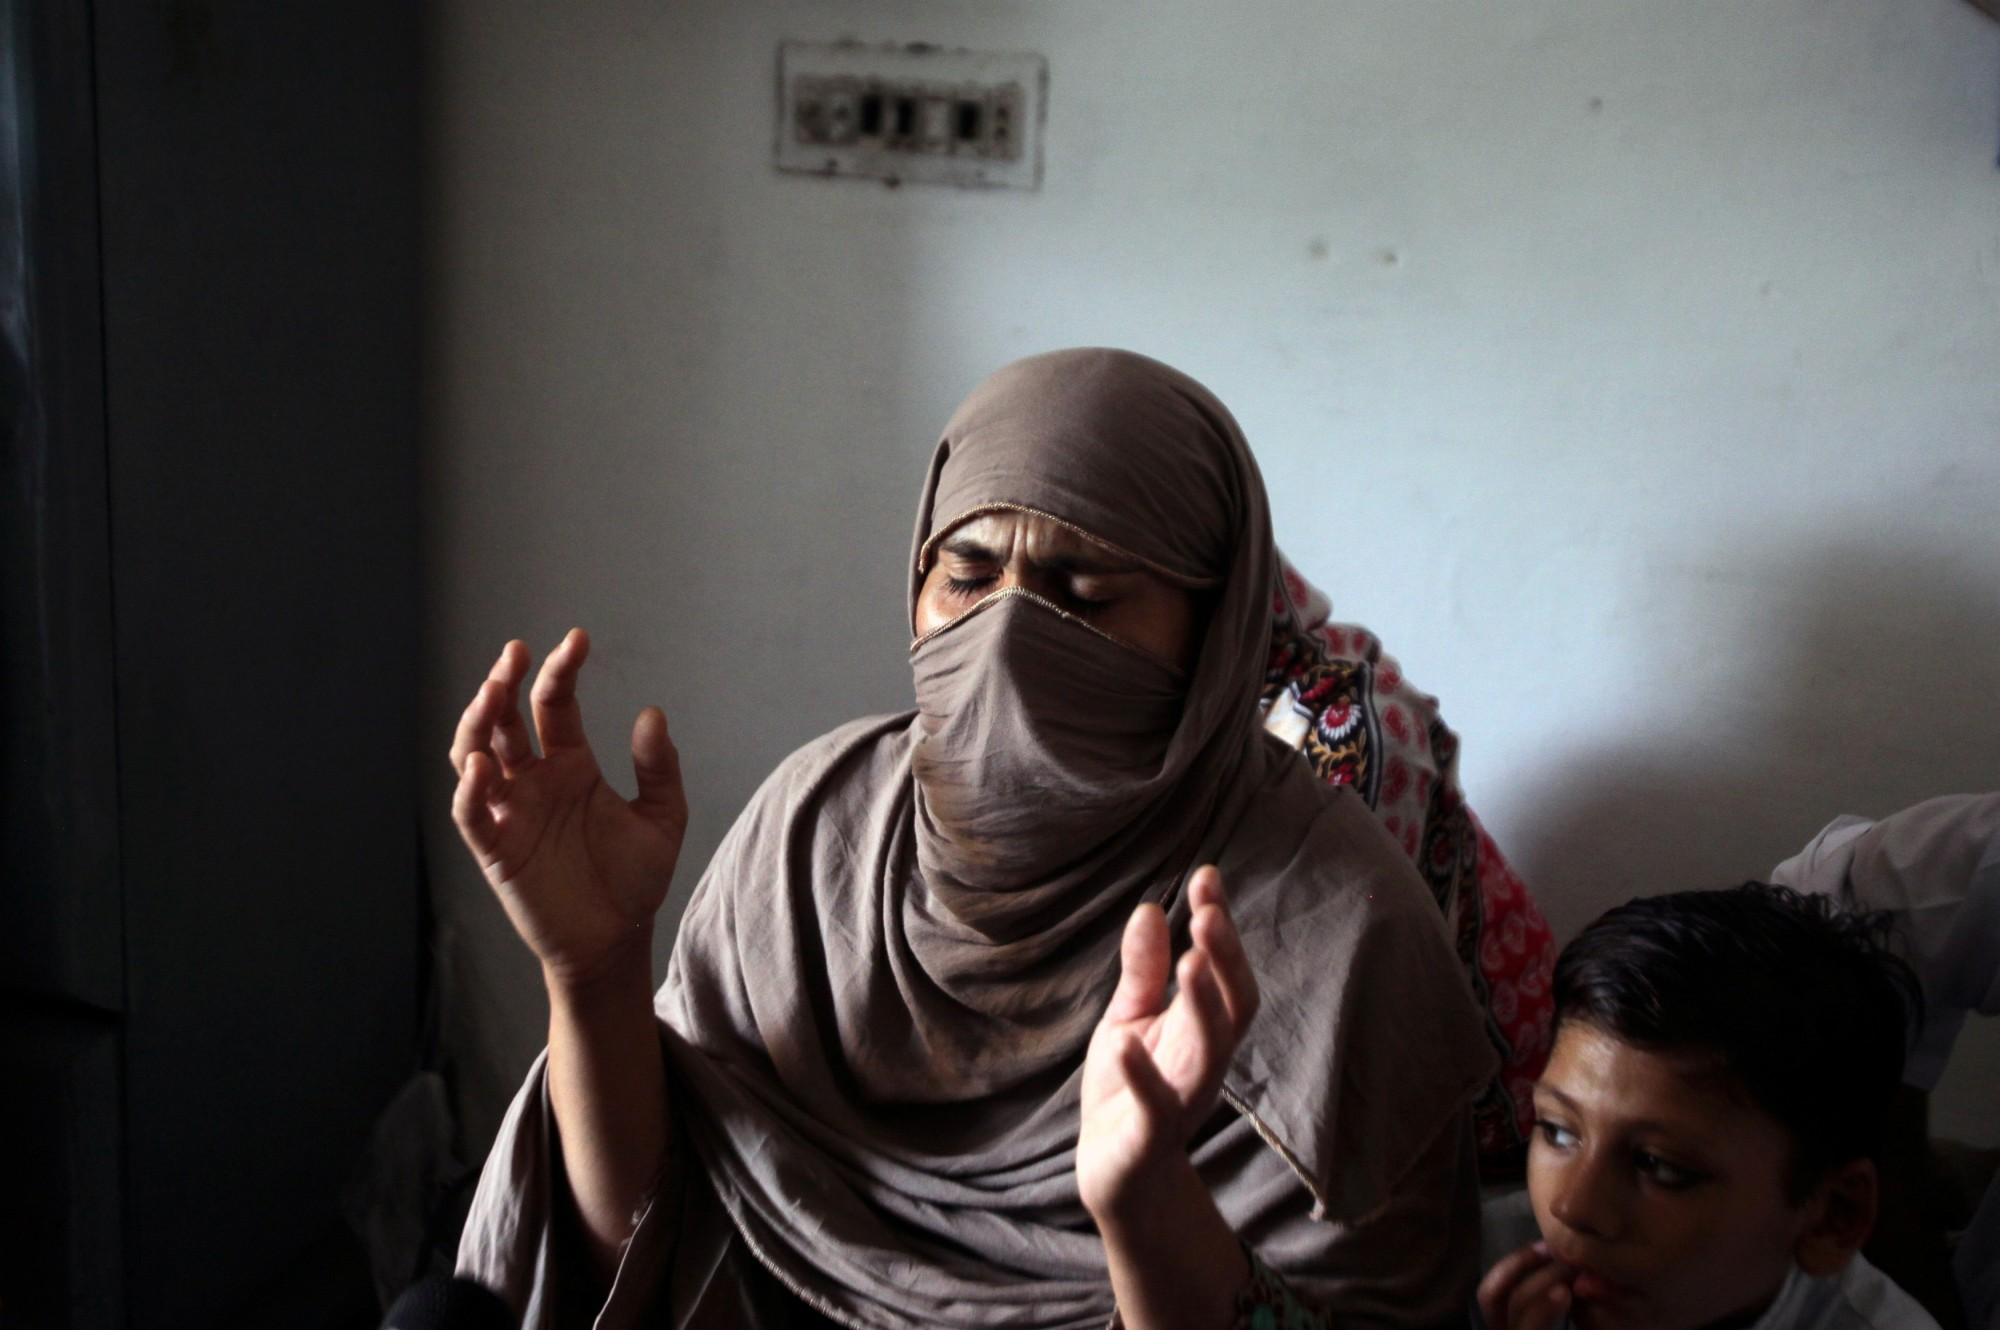 The mother of 8-year-old Muhammad Faizan, who went missing and was later found dead along with two other children, reacts as she speaks with Reuters at her home in Chunian, Kasur, Pakistan, Sept. 19. | REUTERS